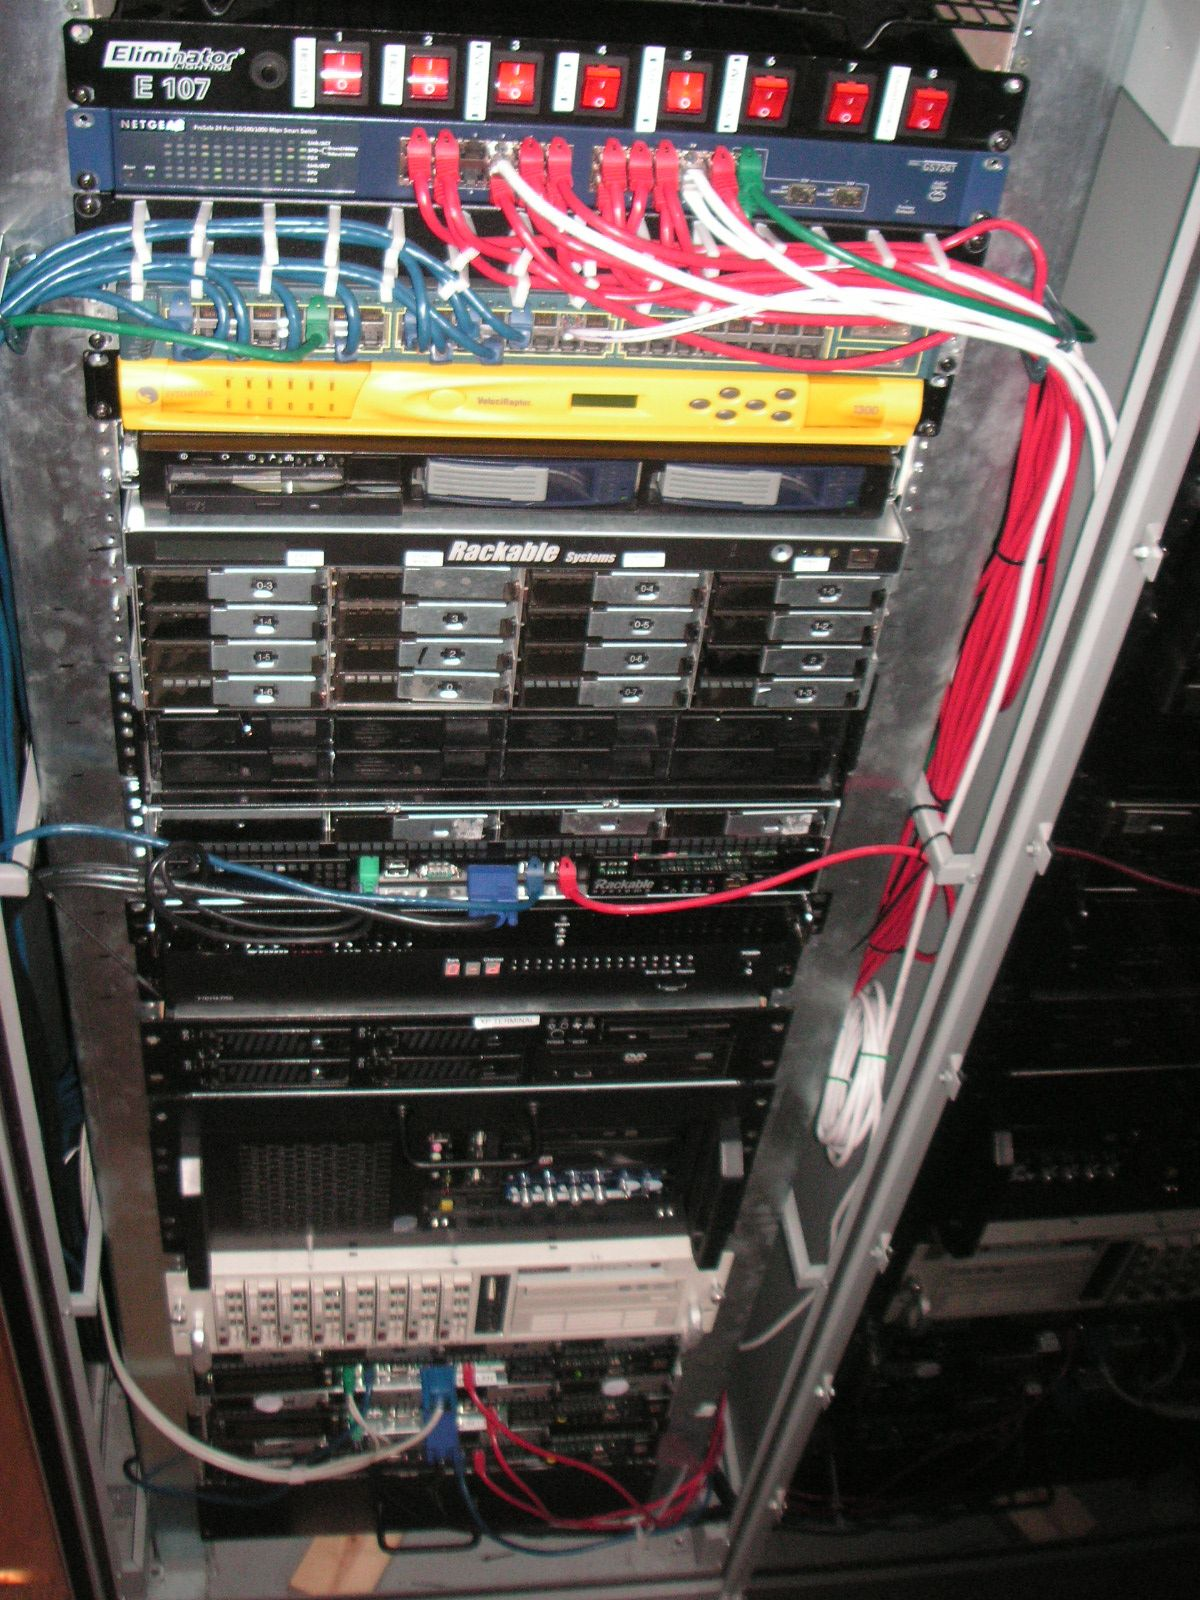 My Home Server Rack 44 Processors 114gb Ram 368tb 10gb Ethernet Diy Structured Wiring Lots Of Fun